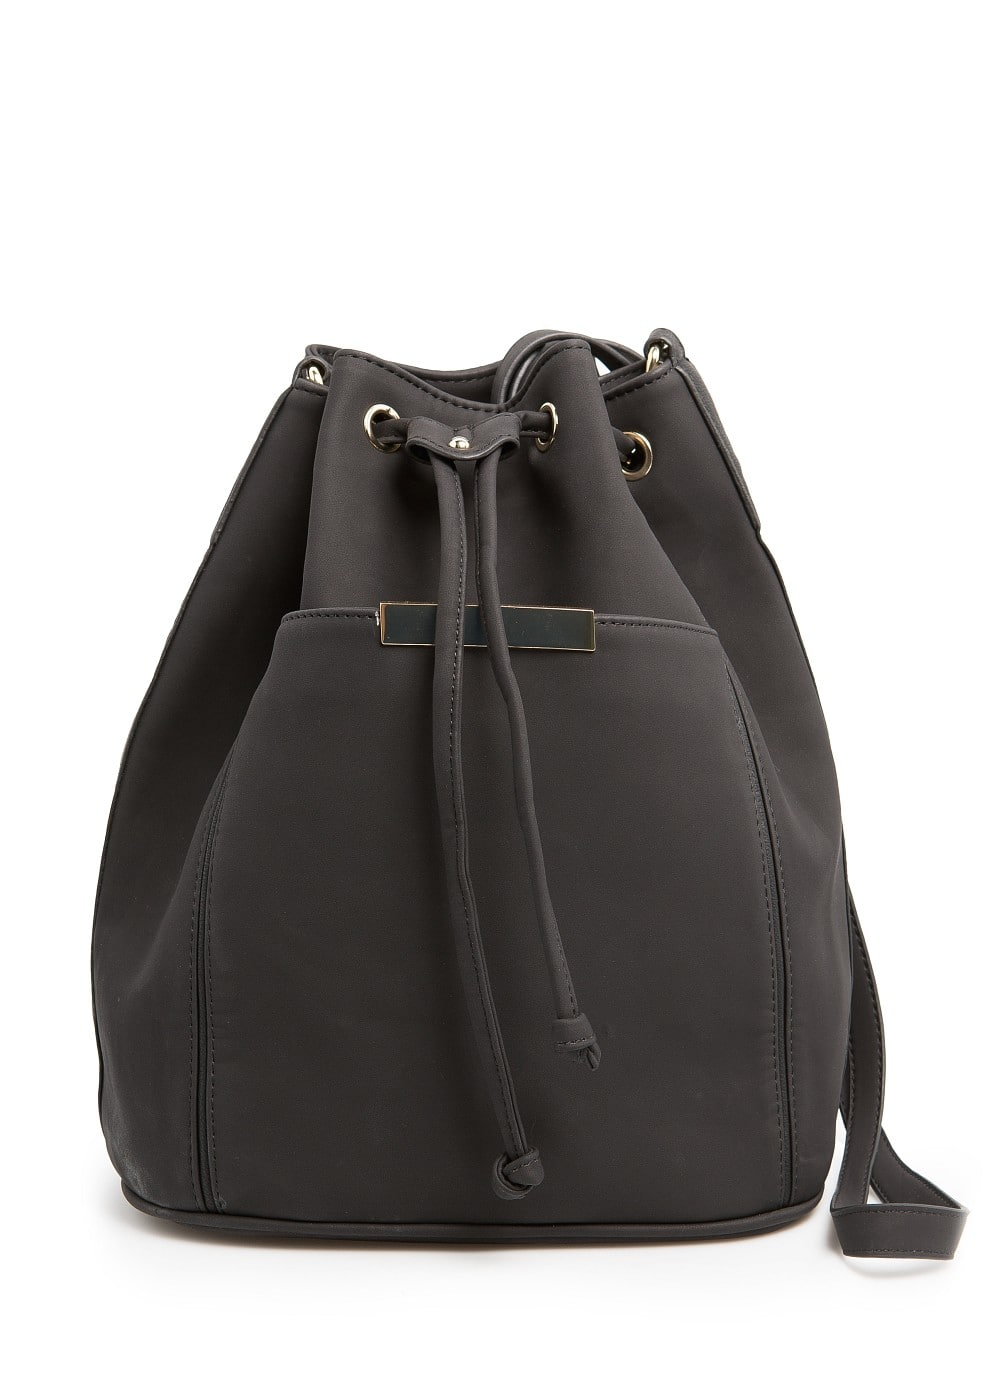 METAL DETAIL BUCKET BAG